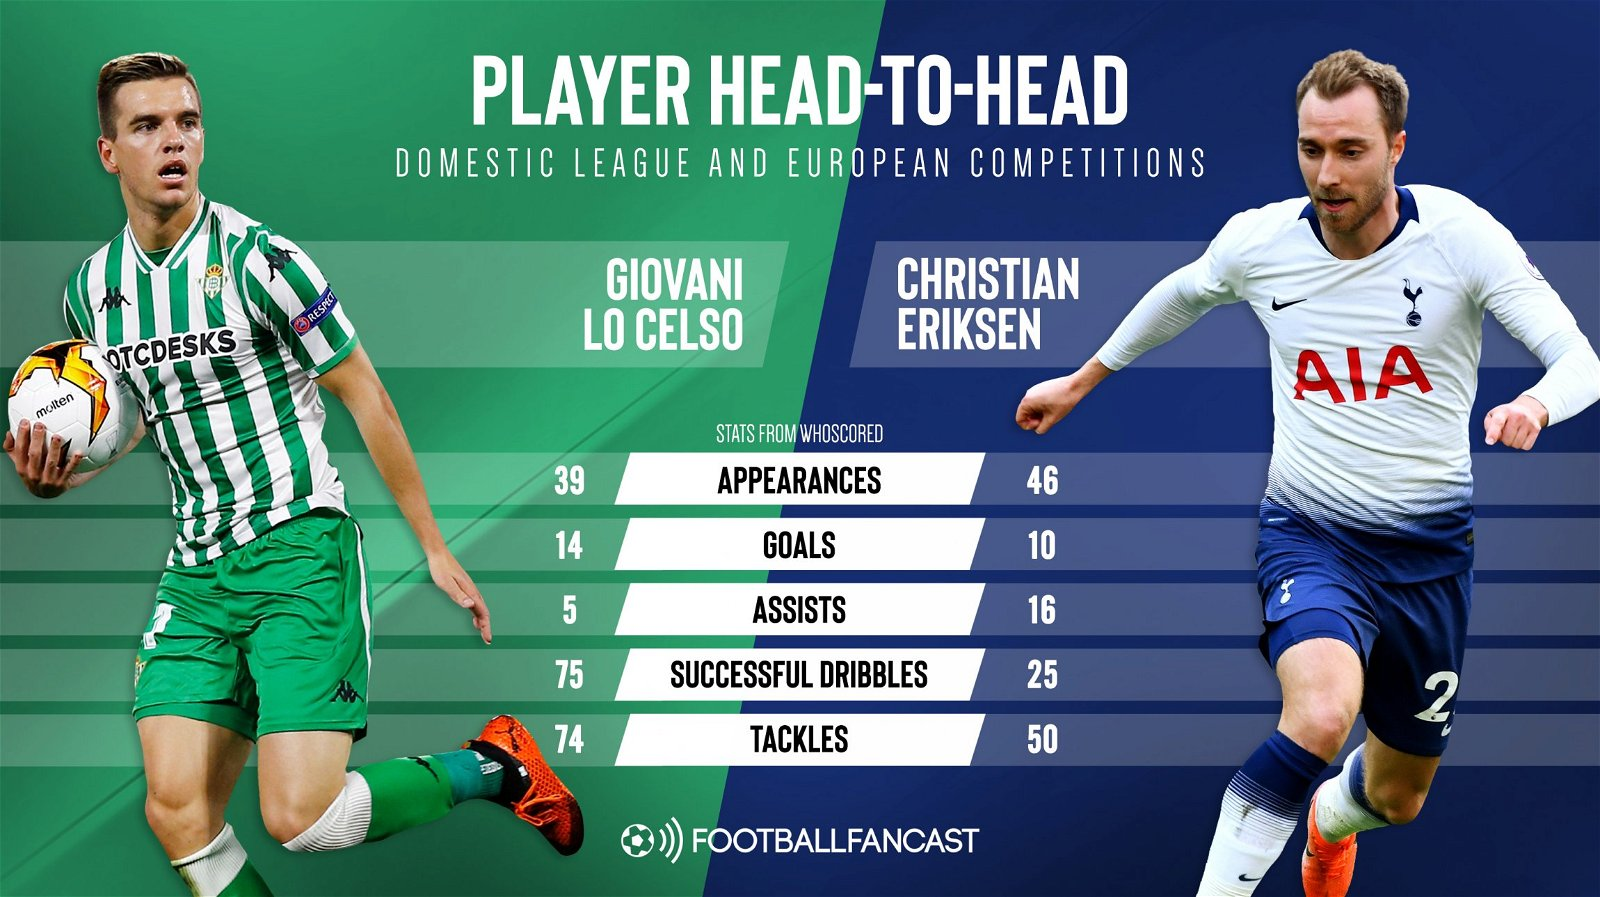 lo celso vs Eriksen - Tottenham's 5-assist transfer target offers something different to Christian Eriksen - opinion